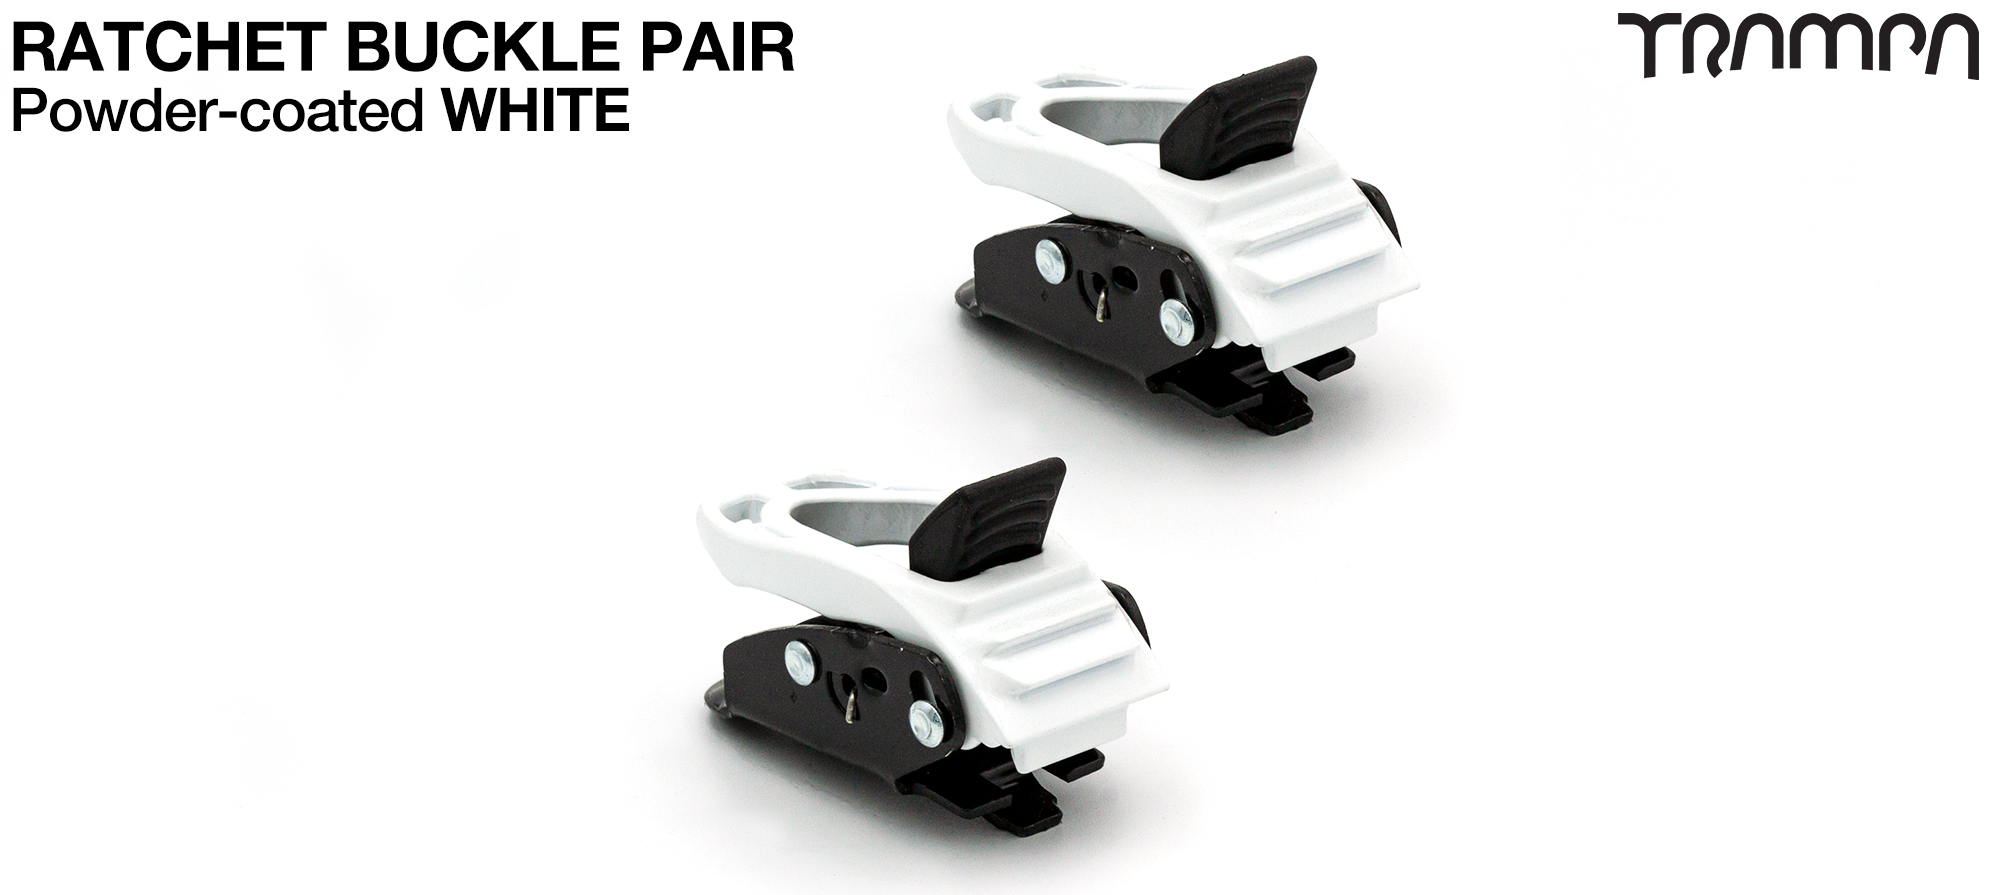 WHITE Powder Coated Ratchet Buckles